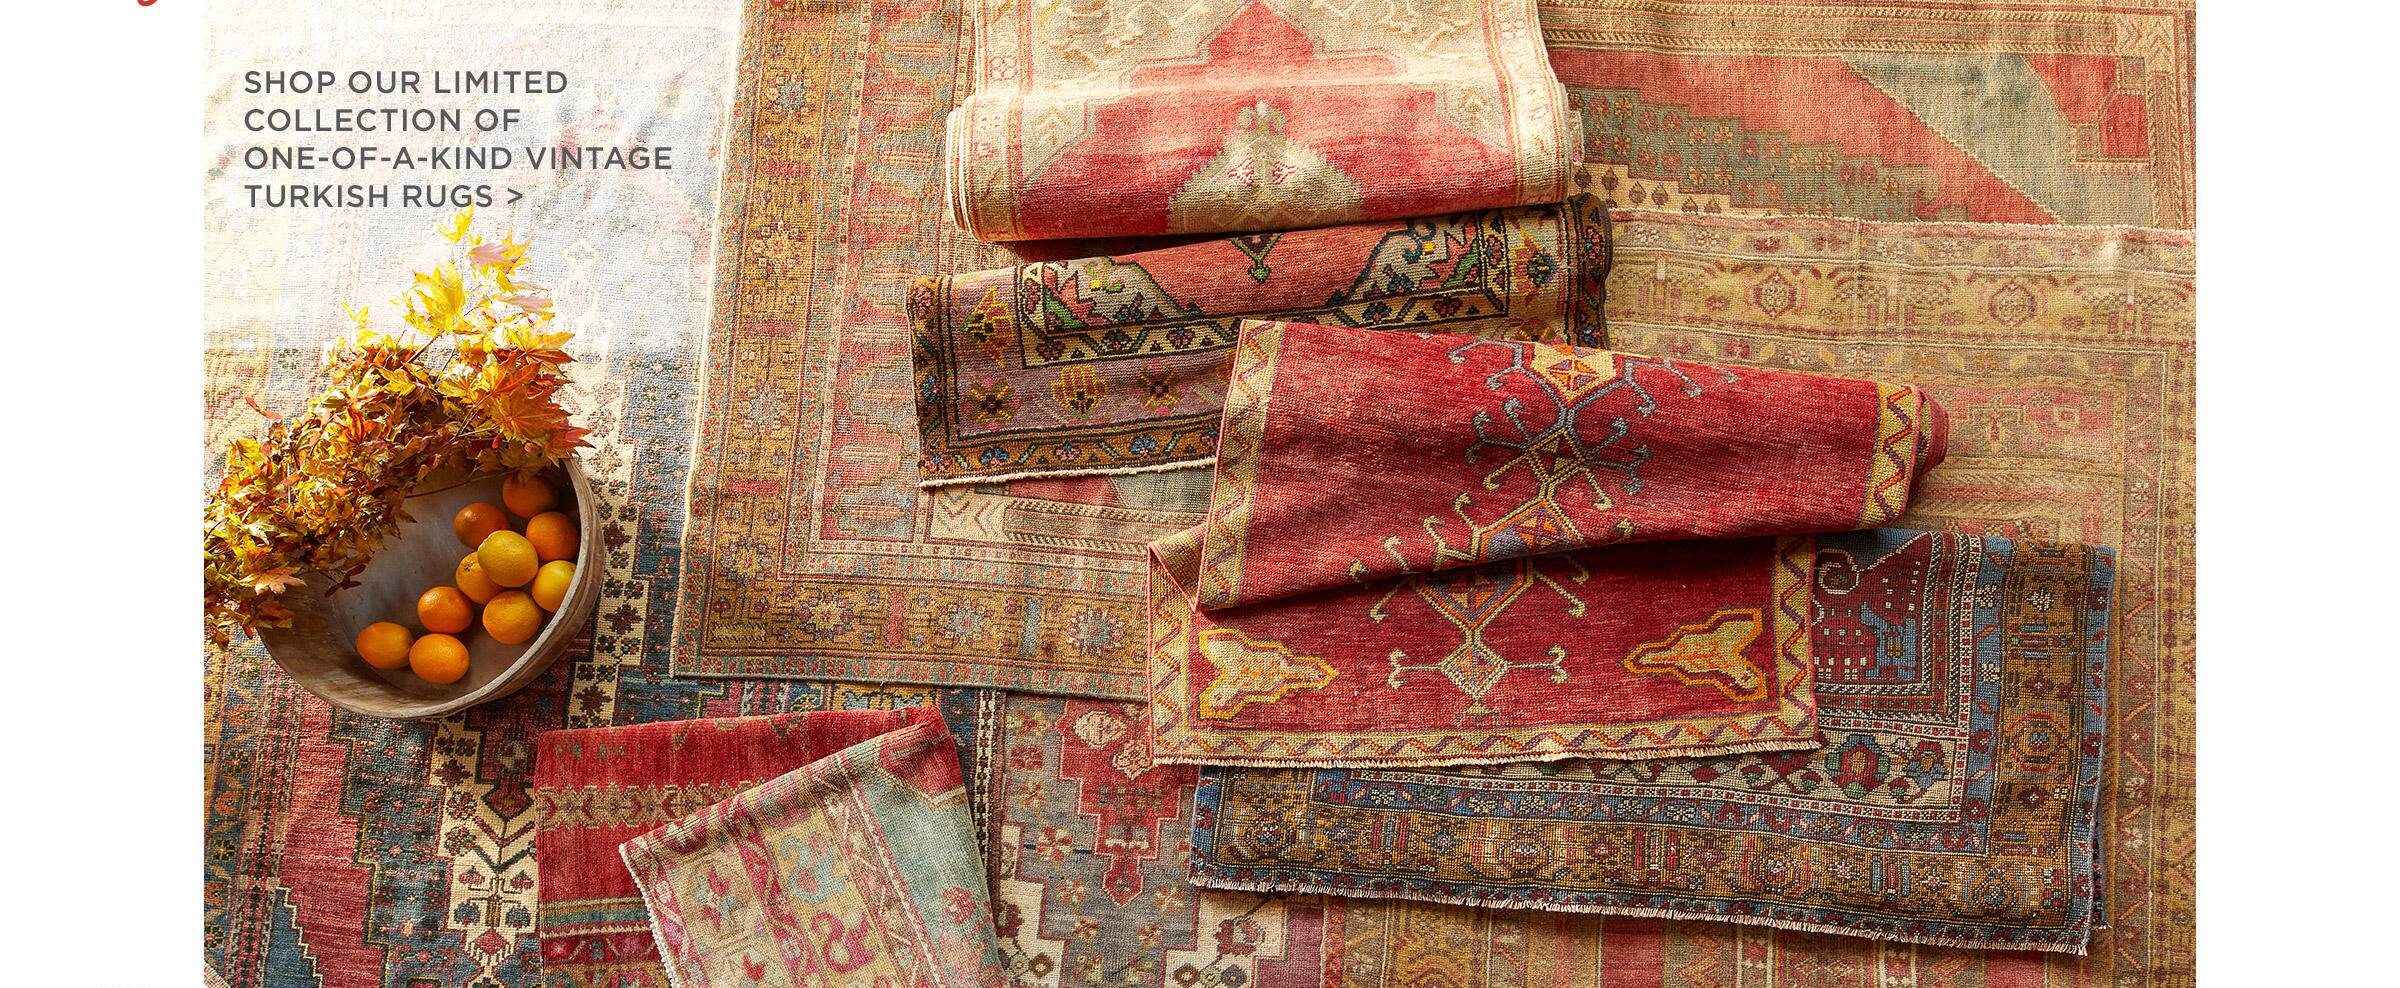 One-Of-A-Kind Turkish Rugs